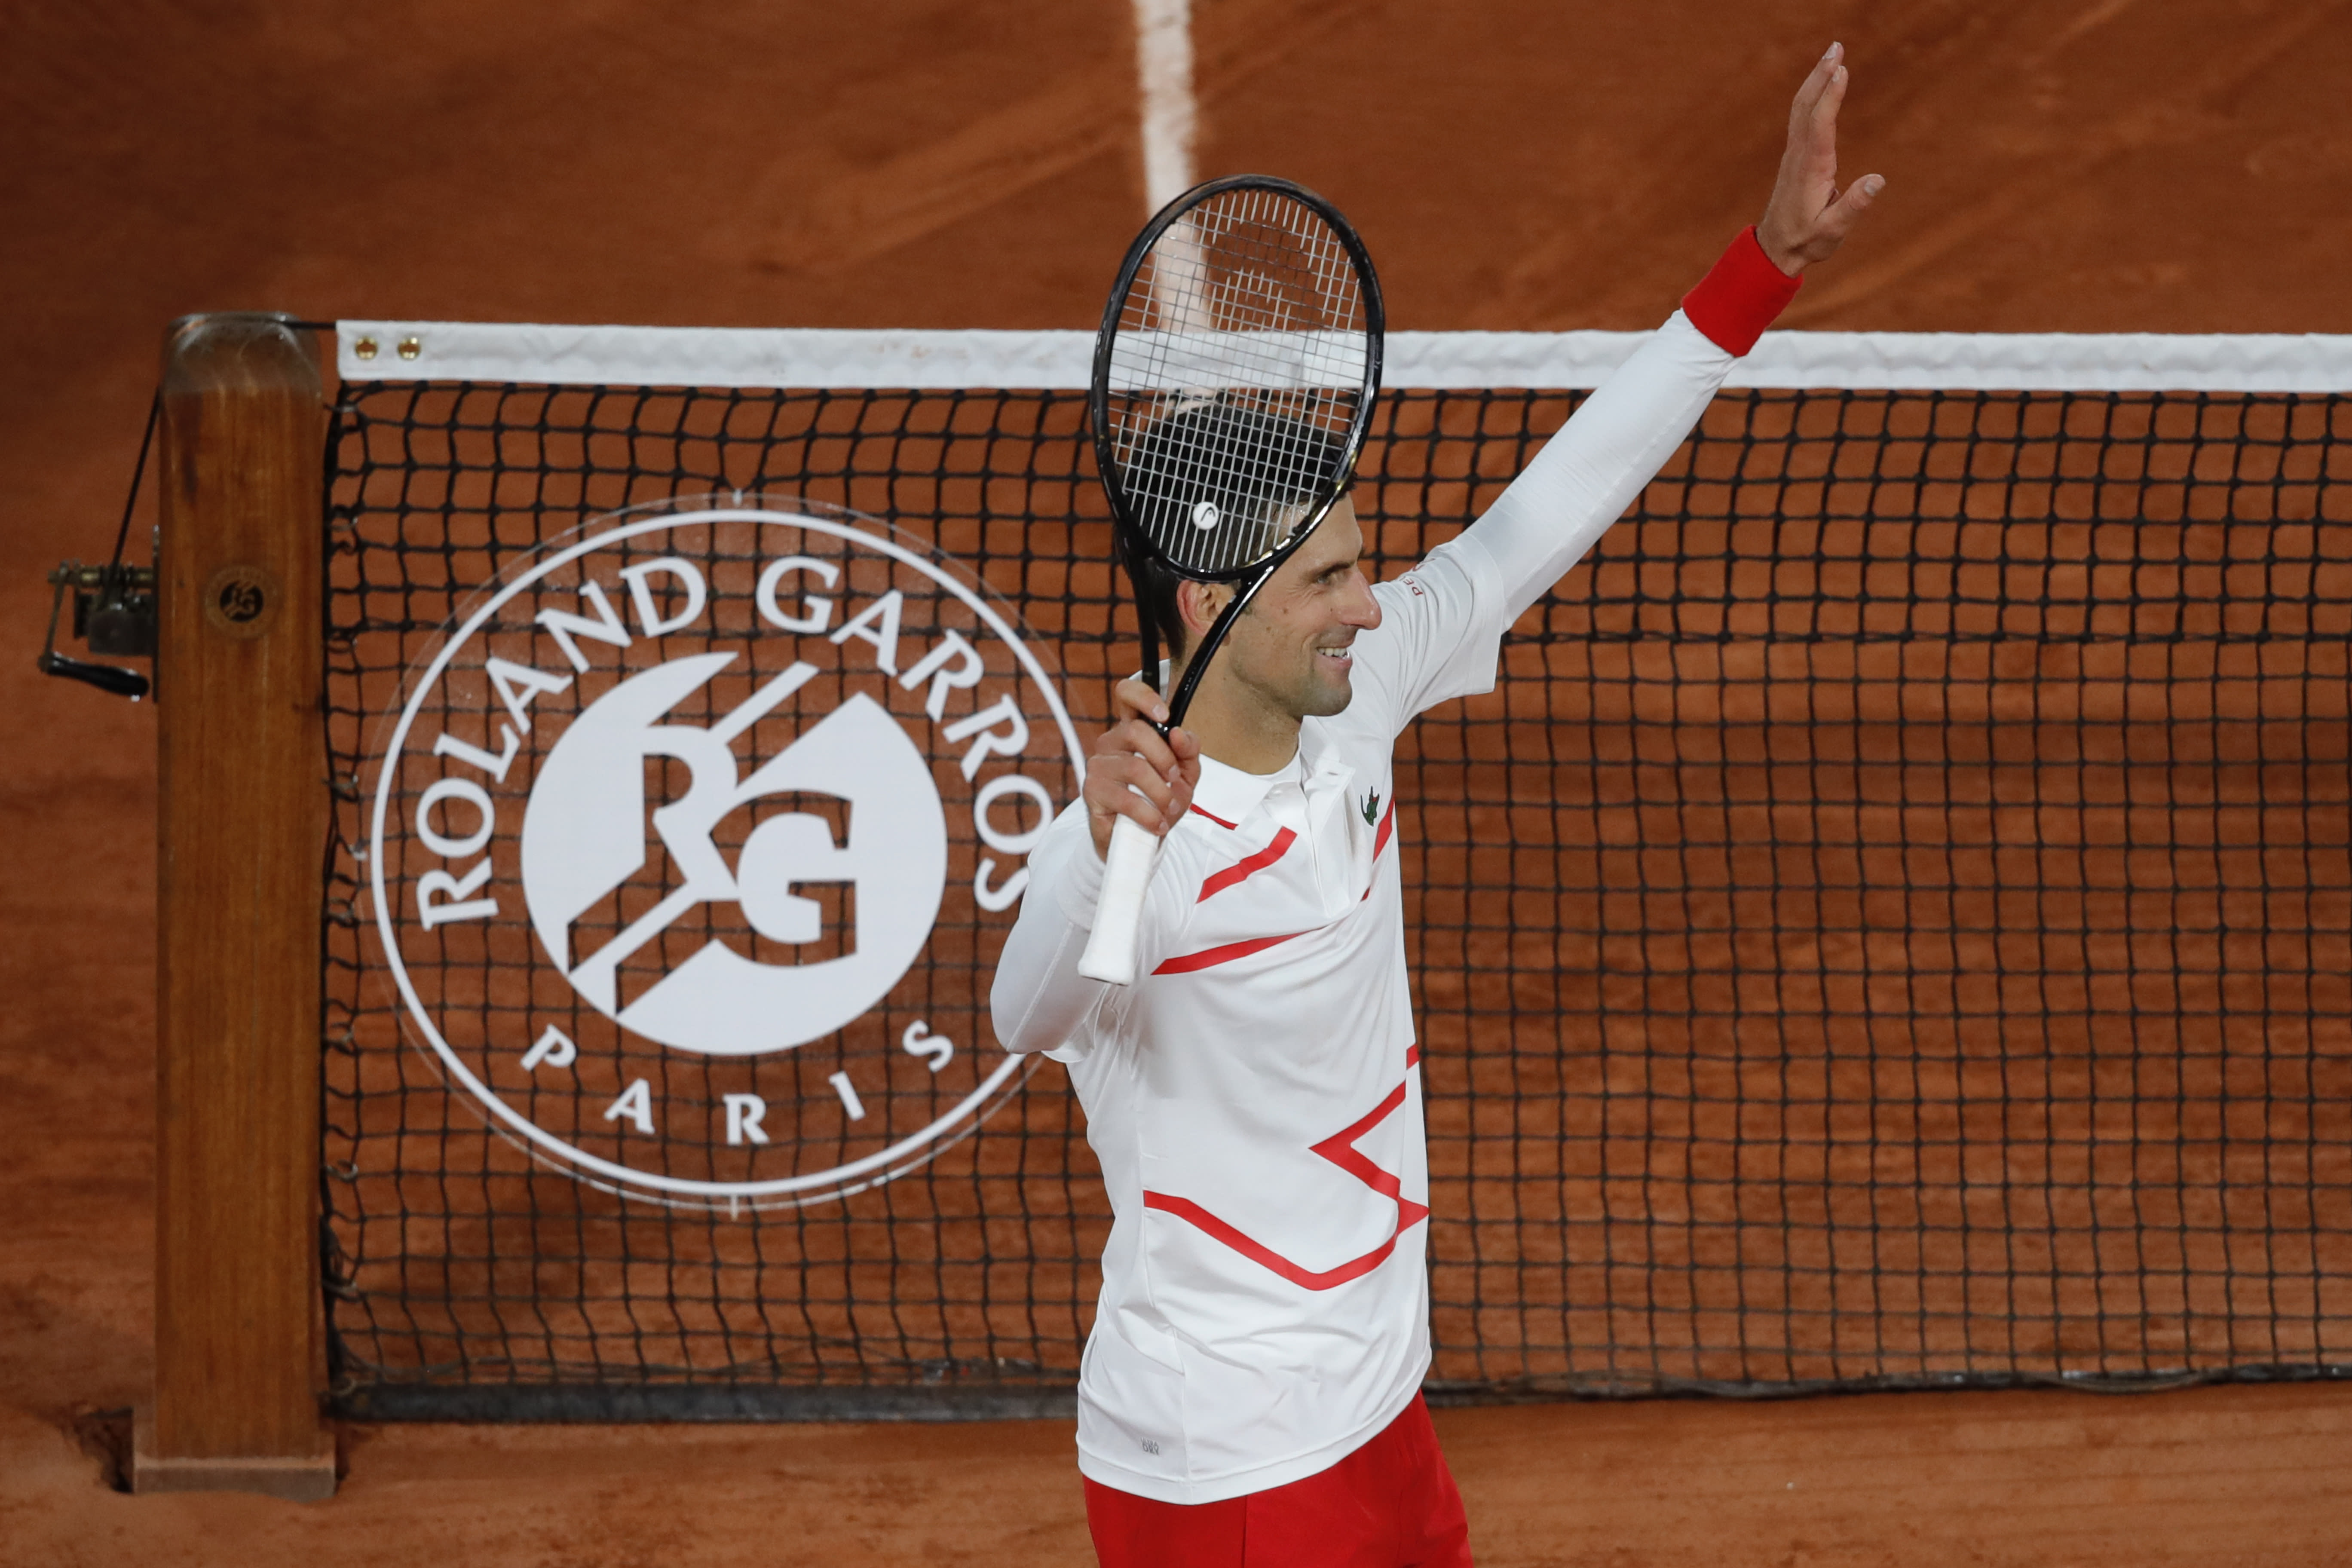 Serbia's Novak Djokovic celebrate winning his third round match of the French Open tennis tournament against Colombia's Daniel Elahi Galan in three sets 6-0, 6-3, 6-3, at the Roland Garros stadium in Paris, France, Saturday, Oct. 3, 2020. (AP Photo/Christophe Ena)